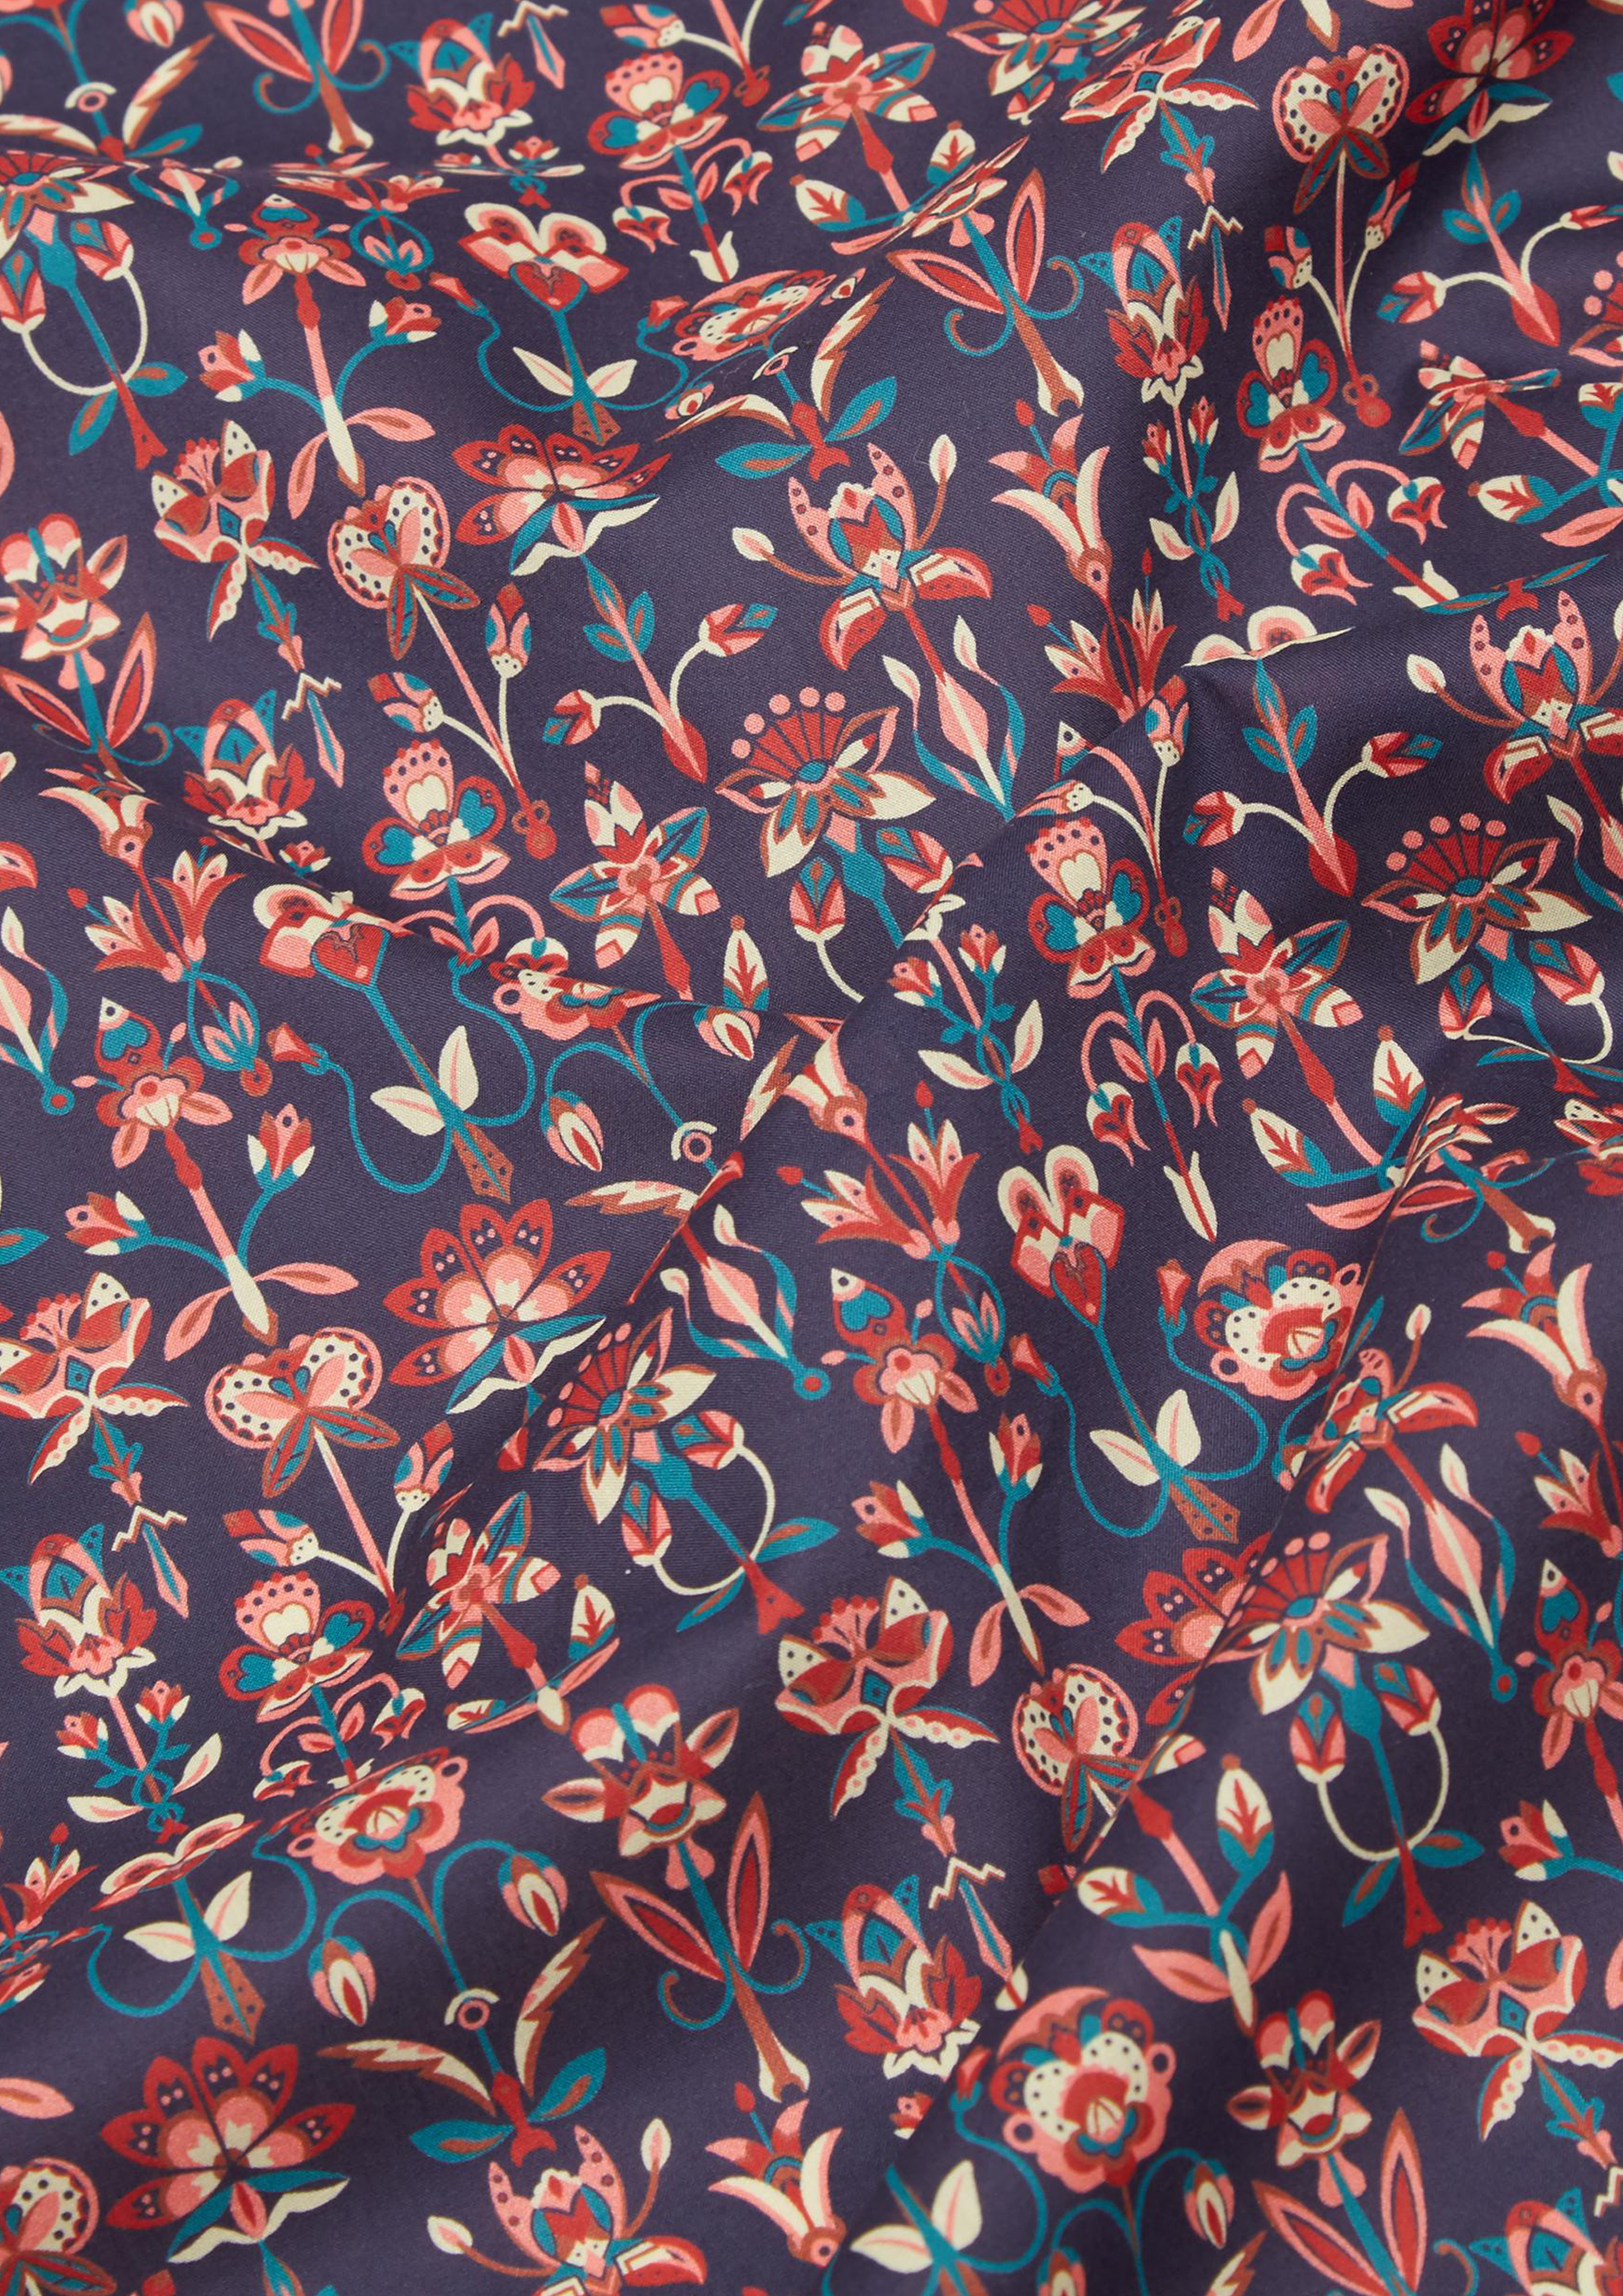 Christoper - Aesthetic Renaissance - Liberty London Fabrics AW19